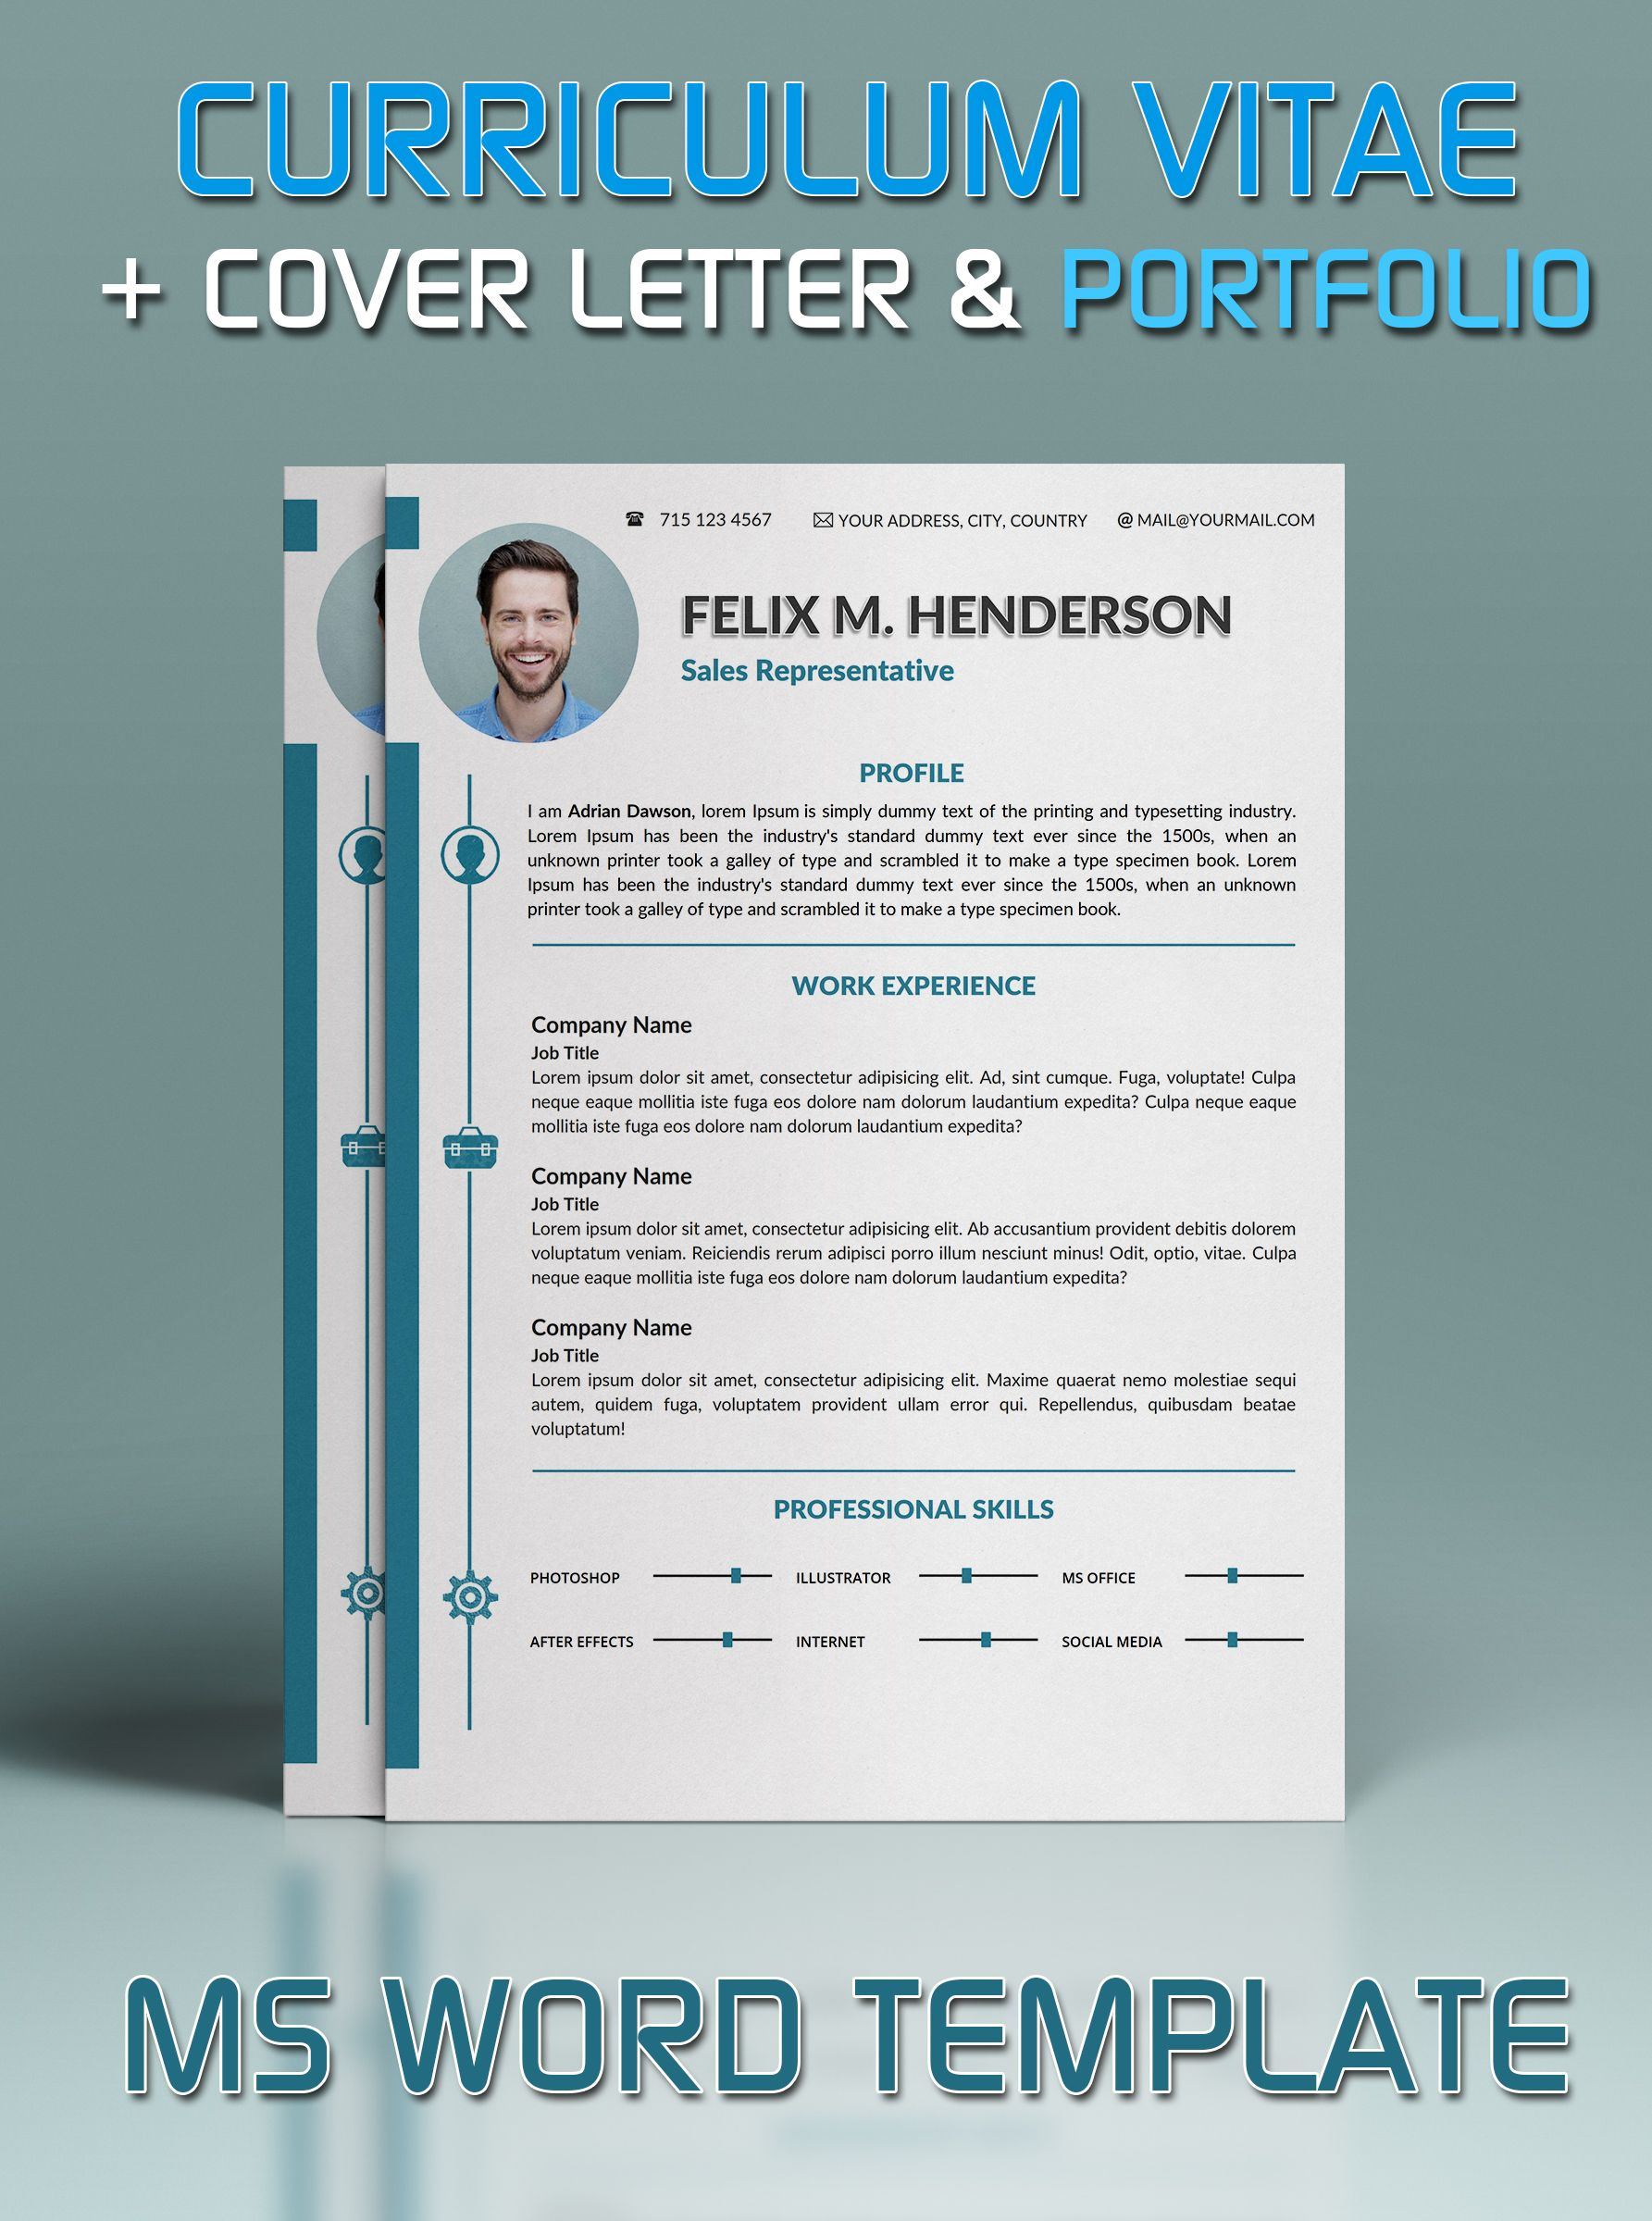 resume template photo cover letter cv template word us resume template modern cover letter portfolio word cv template professional curriculum vitae design diy cv design instant